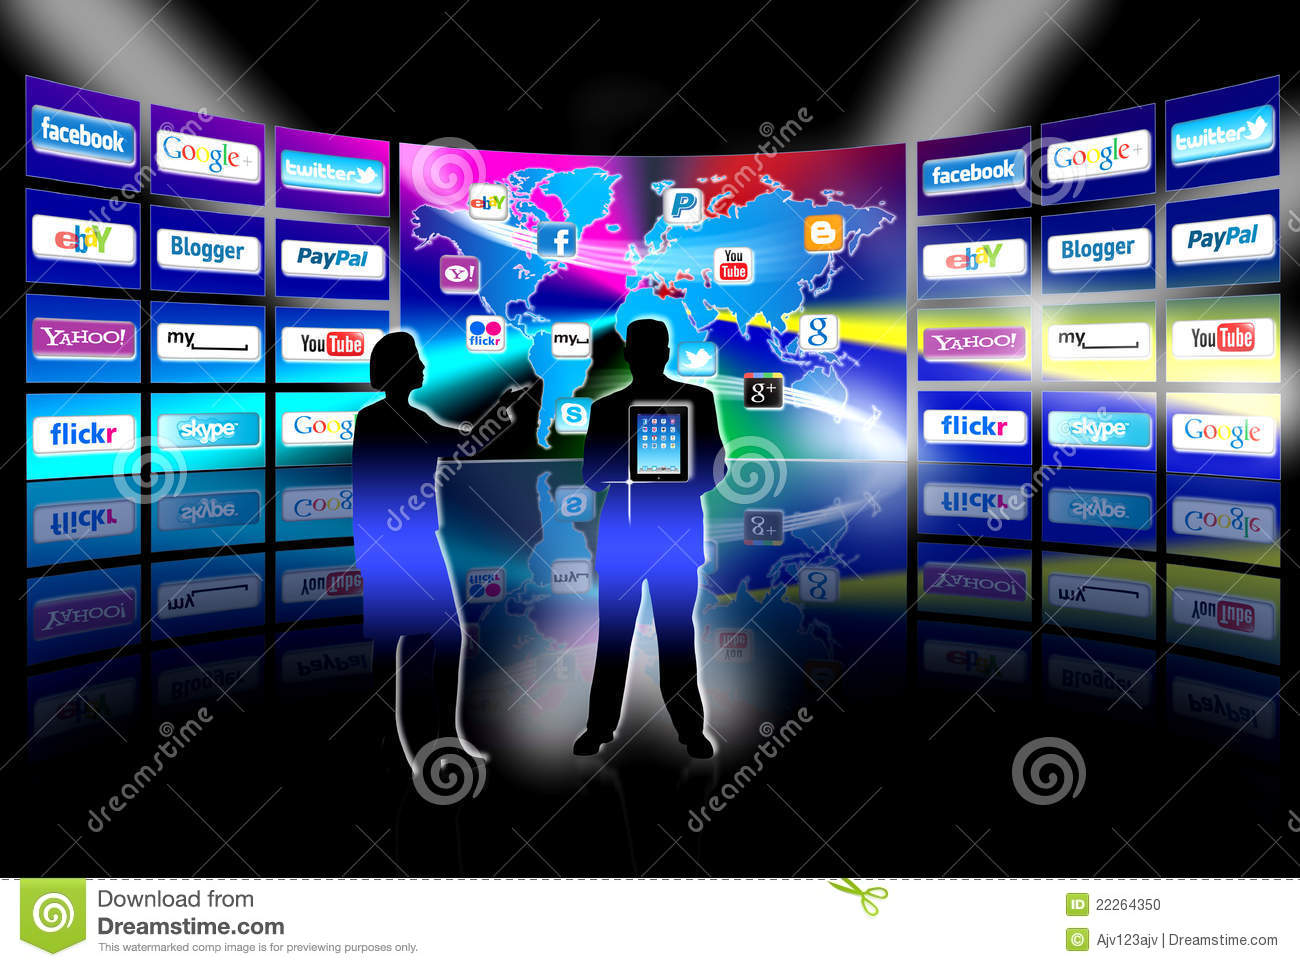 Apps mobile network video wall presentation